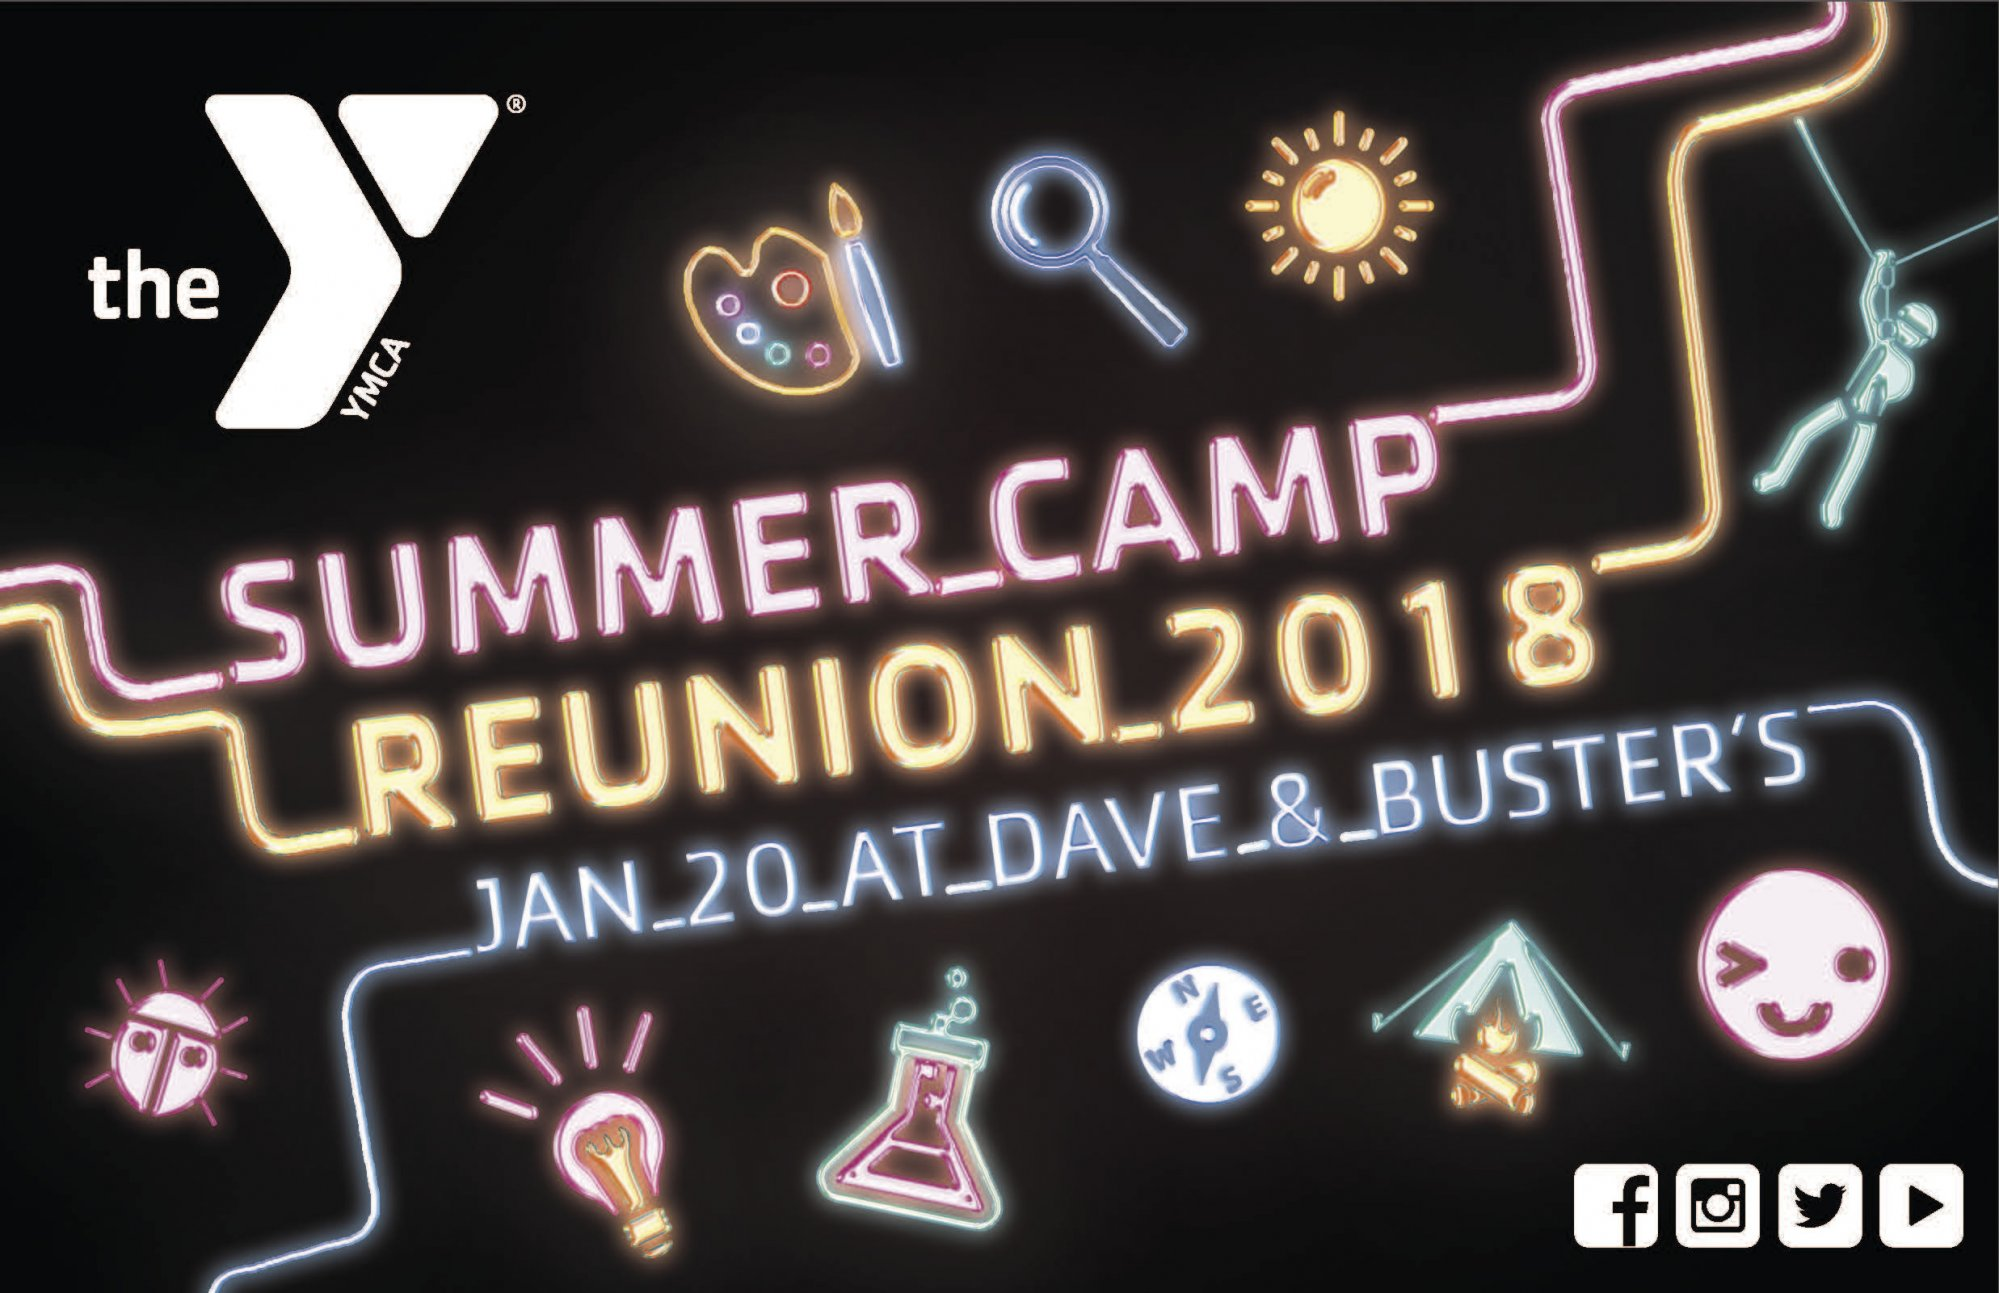 2018 Summer Camp Reunion